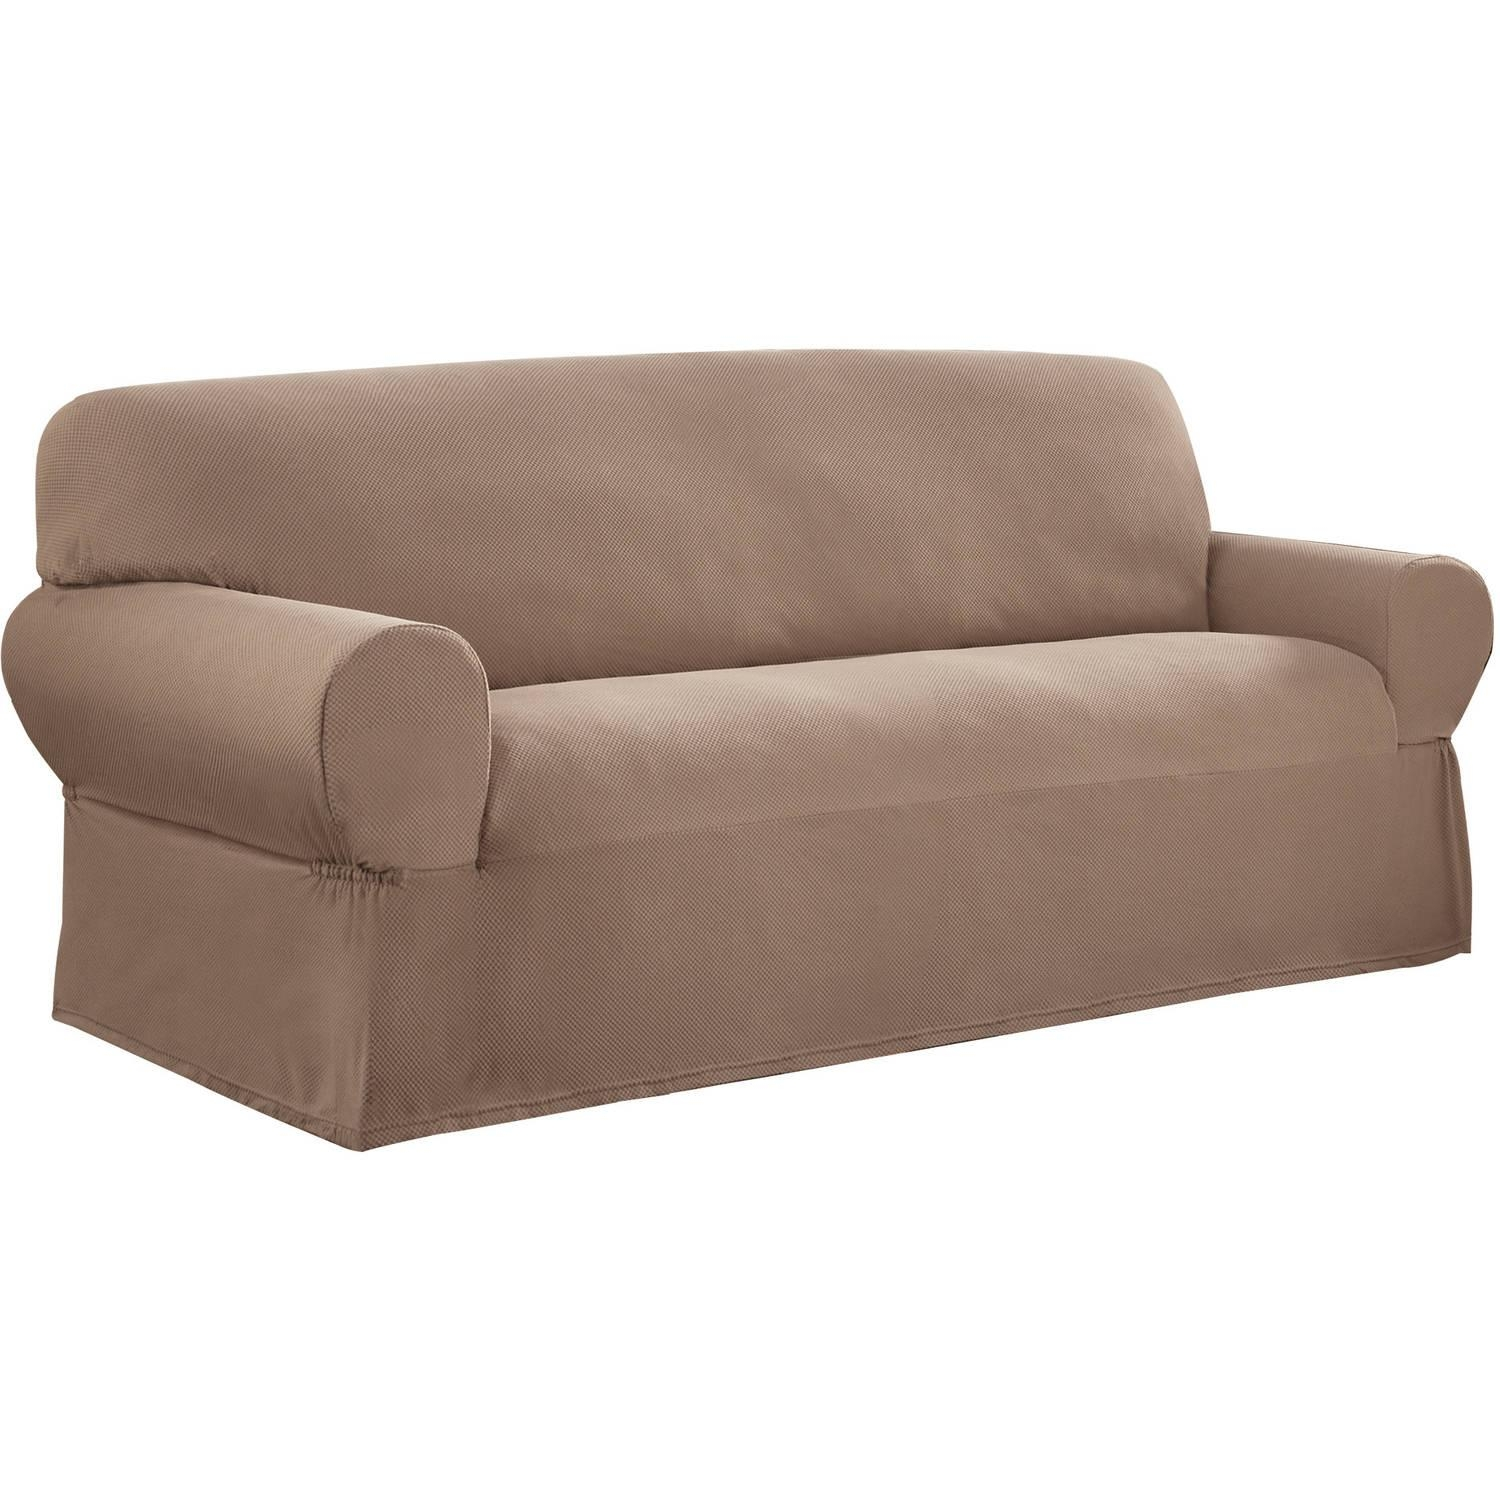 Slipcovers – Walmart Within 3 Piece Sectional Sofa Slipcovers (Image 18 of 20)